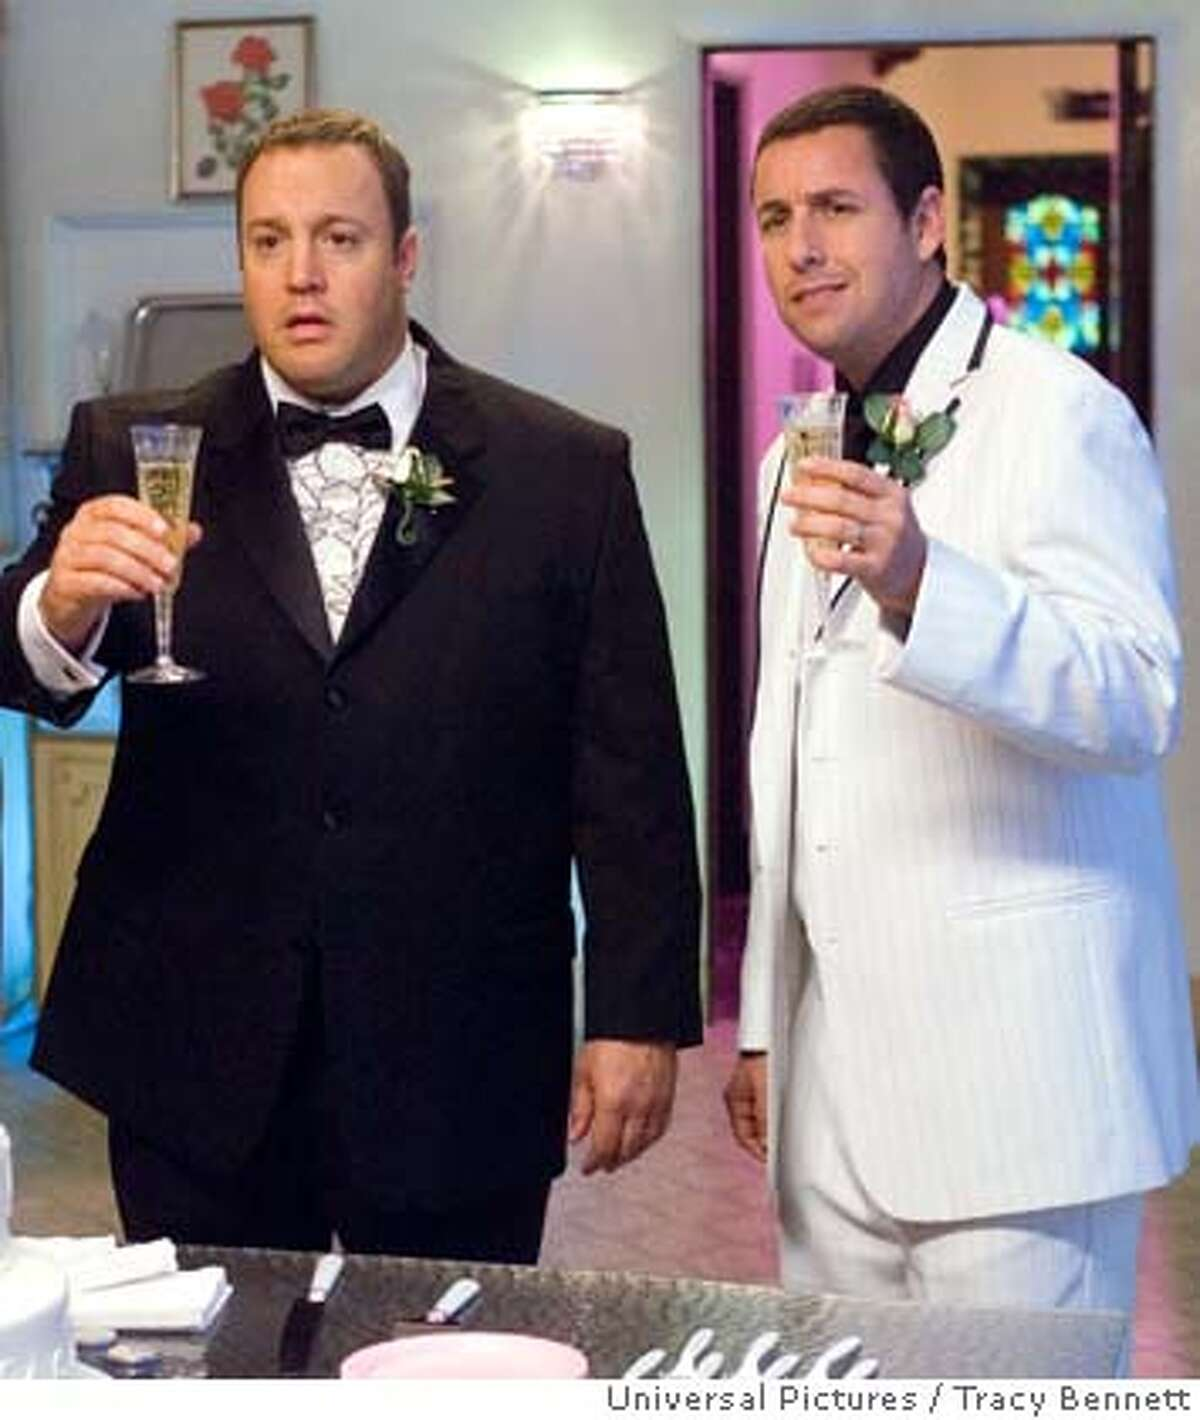 """� Universal Pictures provided this photo of (left to right) Kevin James and Adam Sandler in """"I Now Pronounce You Chuck & Larry."""" (AP Photo/Universal Pictures/Tracy Bennett) NO SALES"""